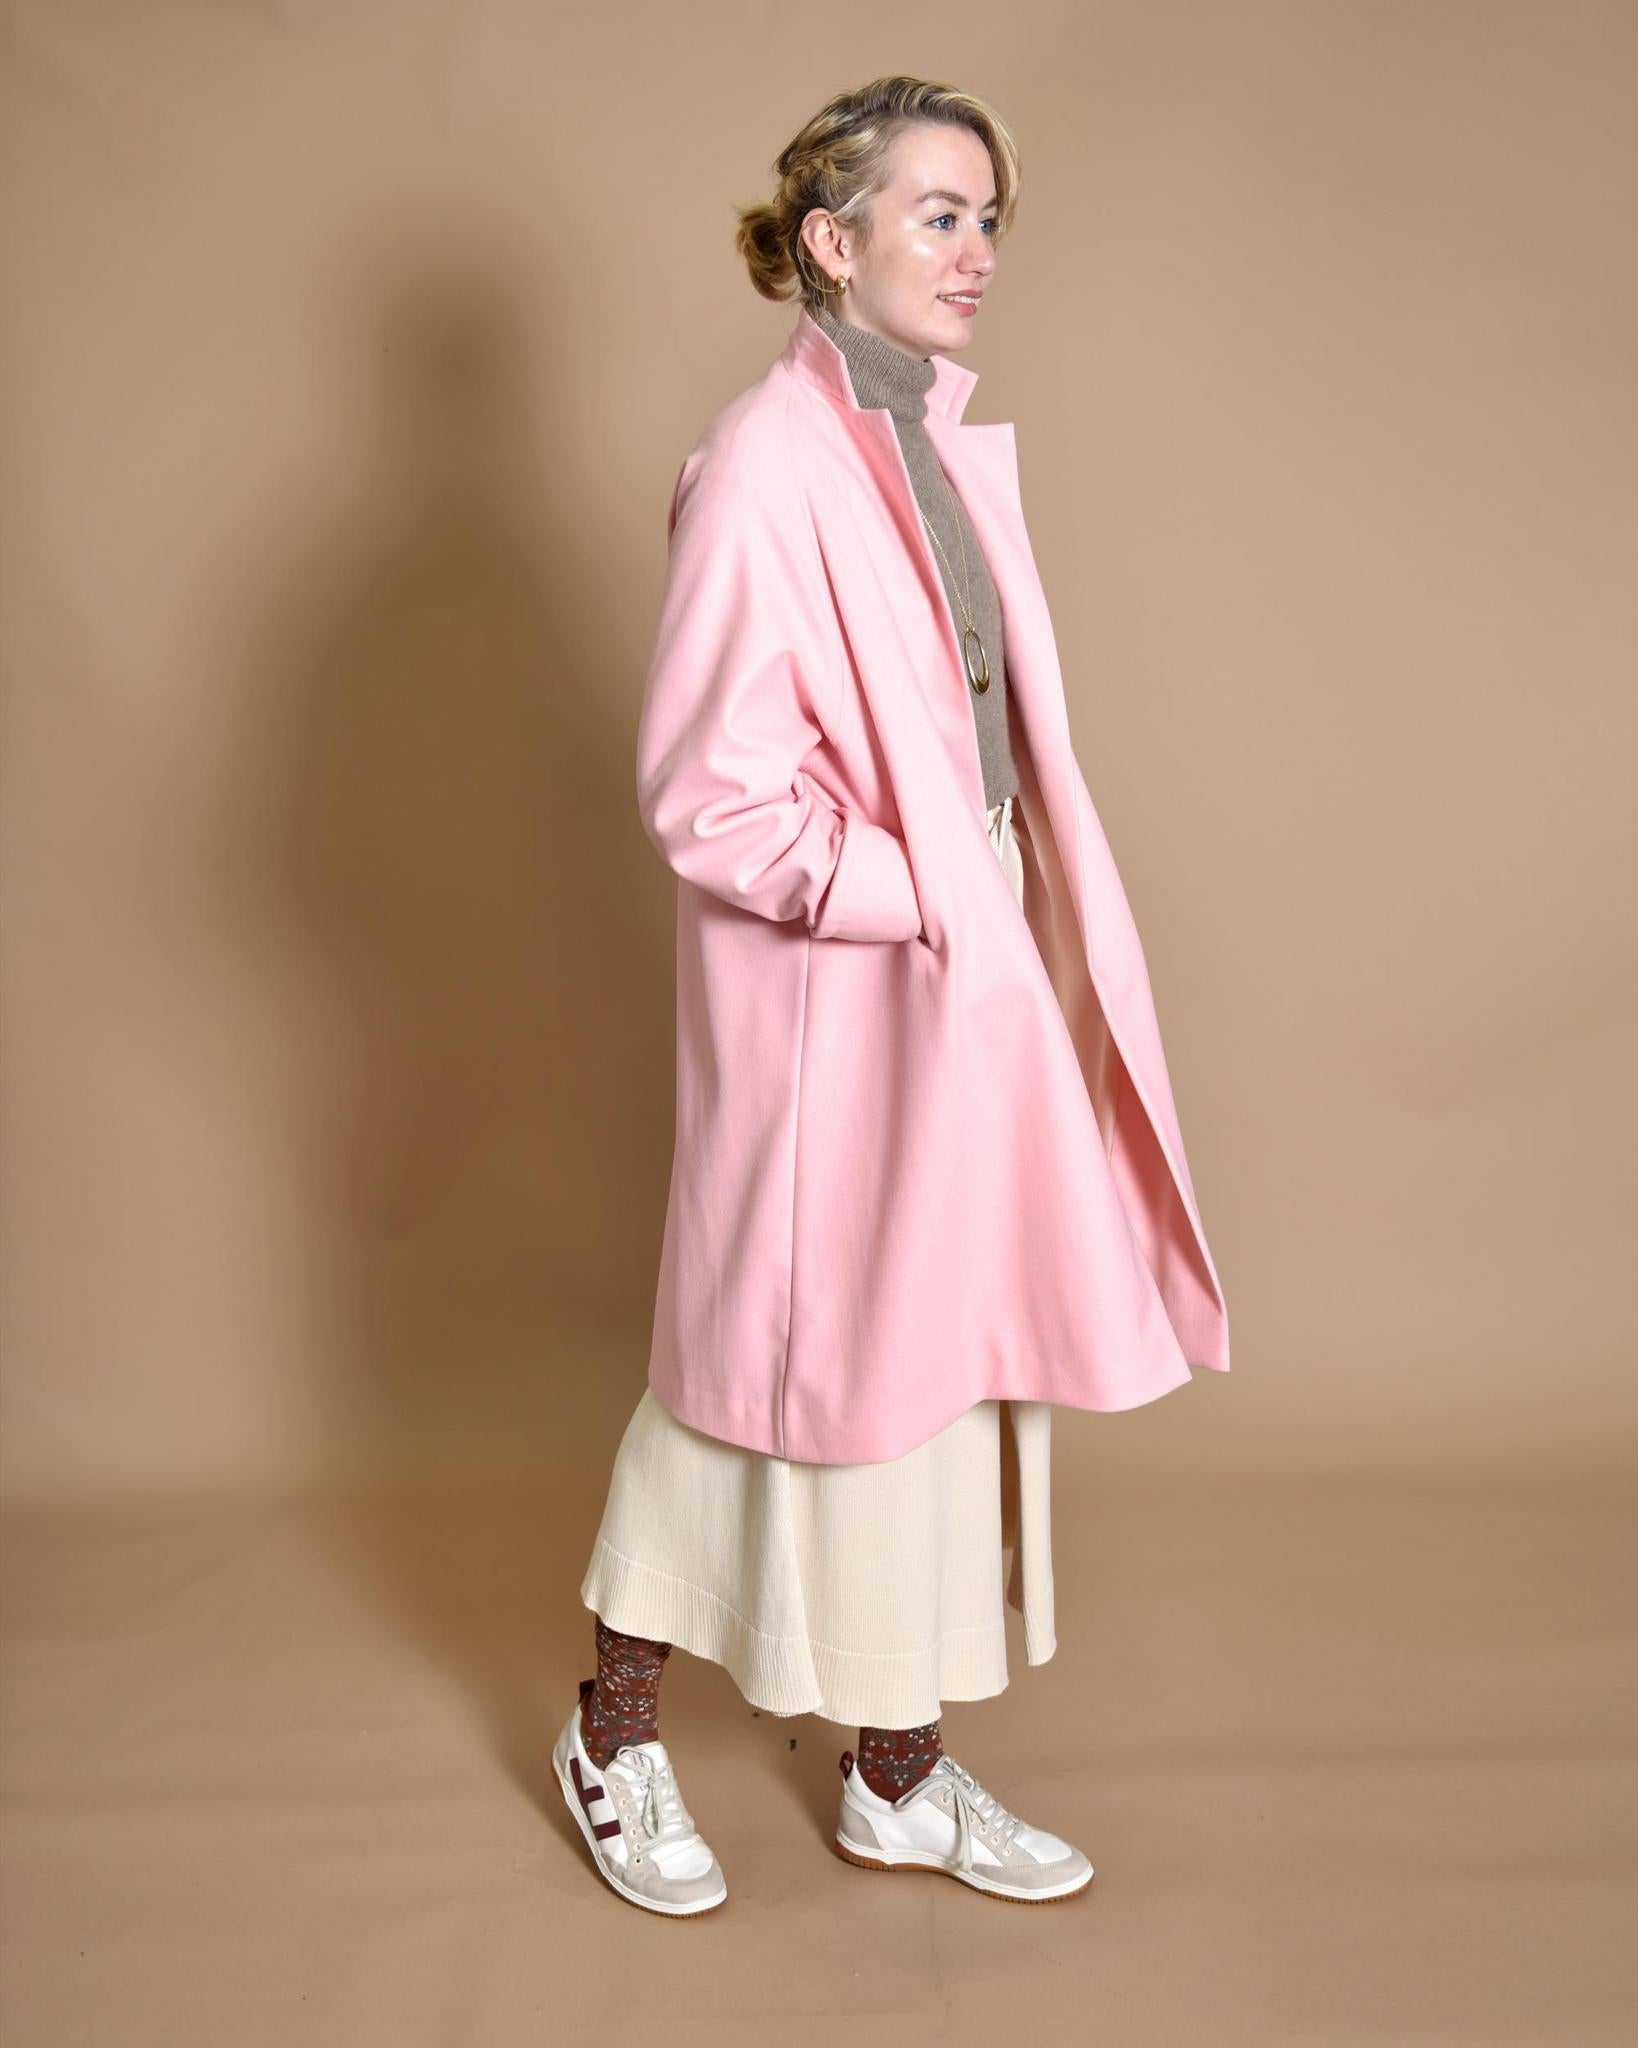 NATALIE B COLEMAN Wool Coat with Sleeve Motif Soft Pink